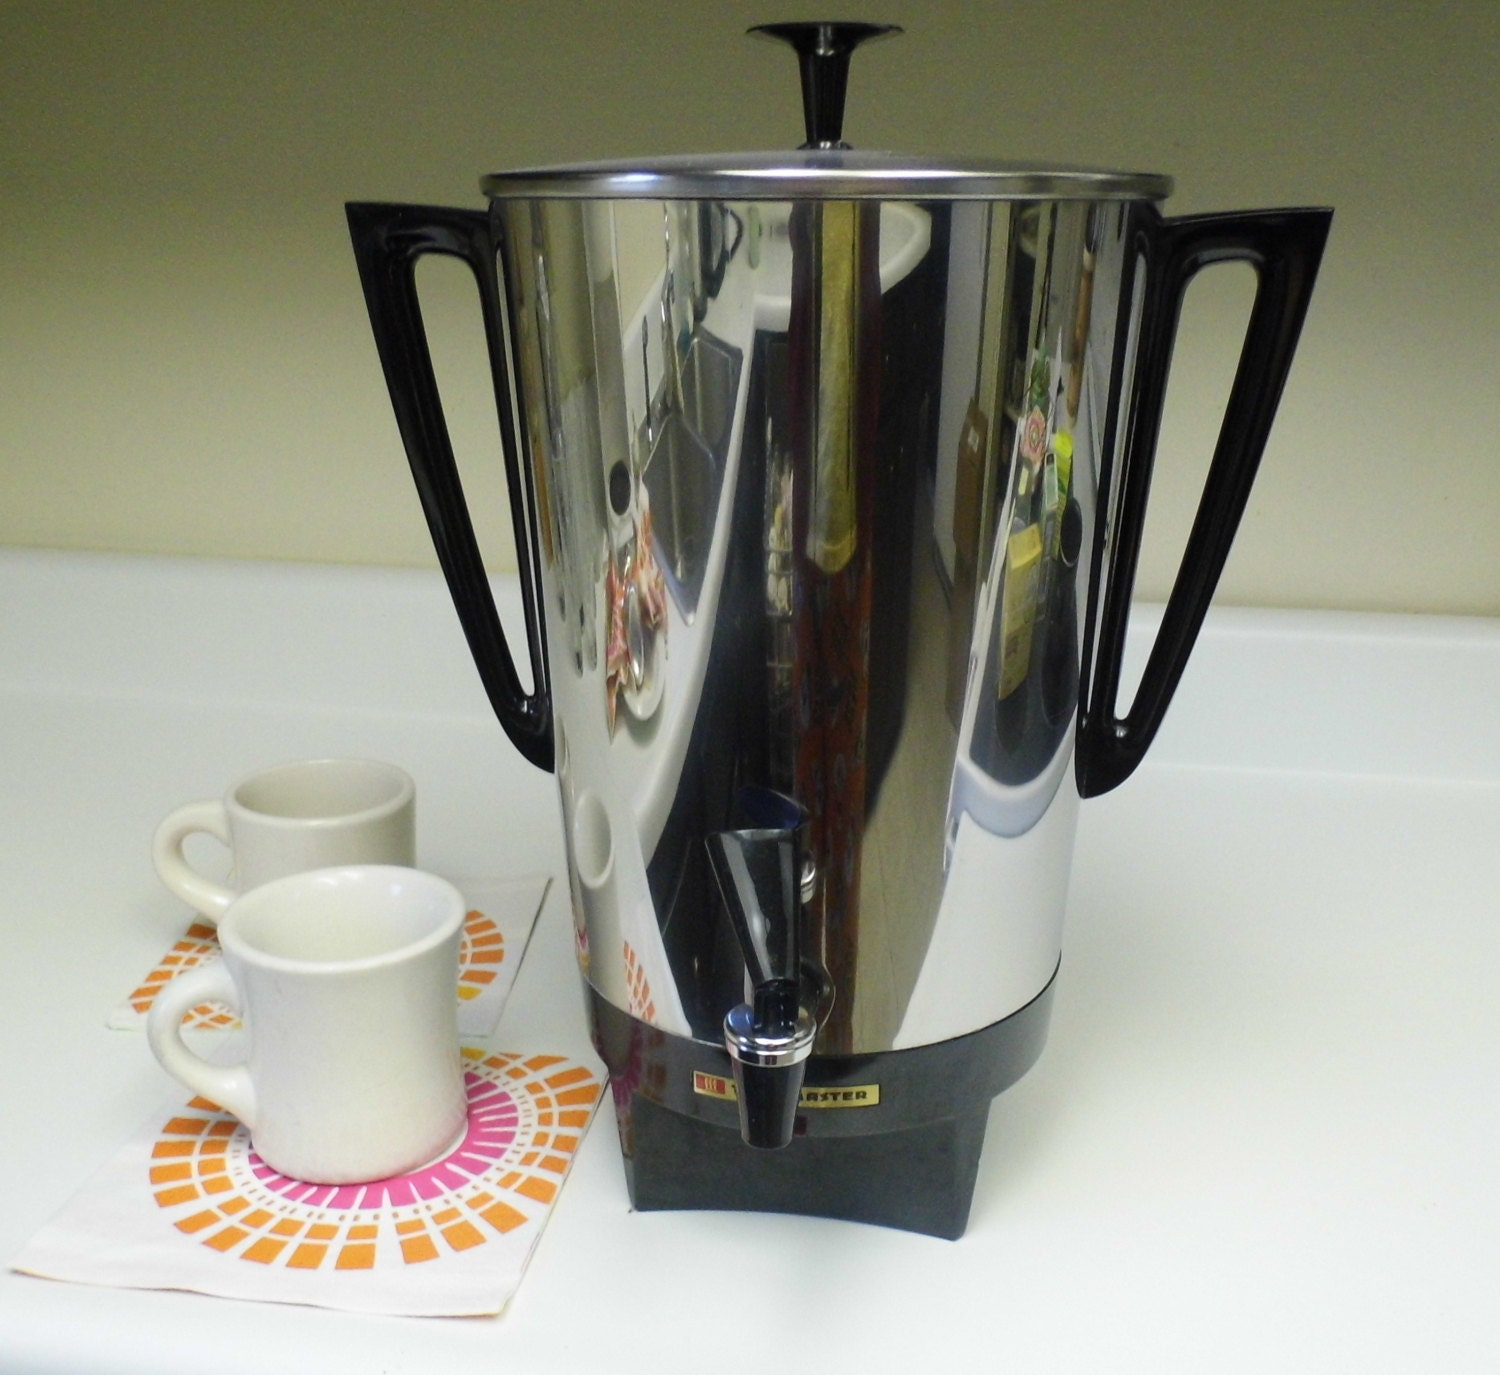 Vintage Electric Coffee Maker : Items similar to Vintage 30 Cup Electric Coffee Maker Pot Retro Toastmaster on Etsy